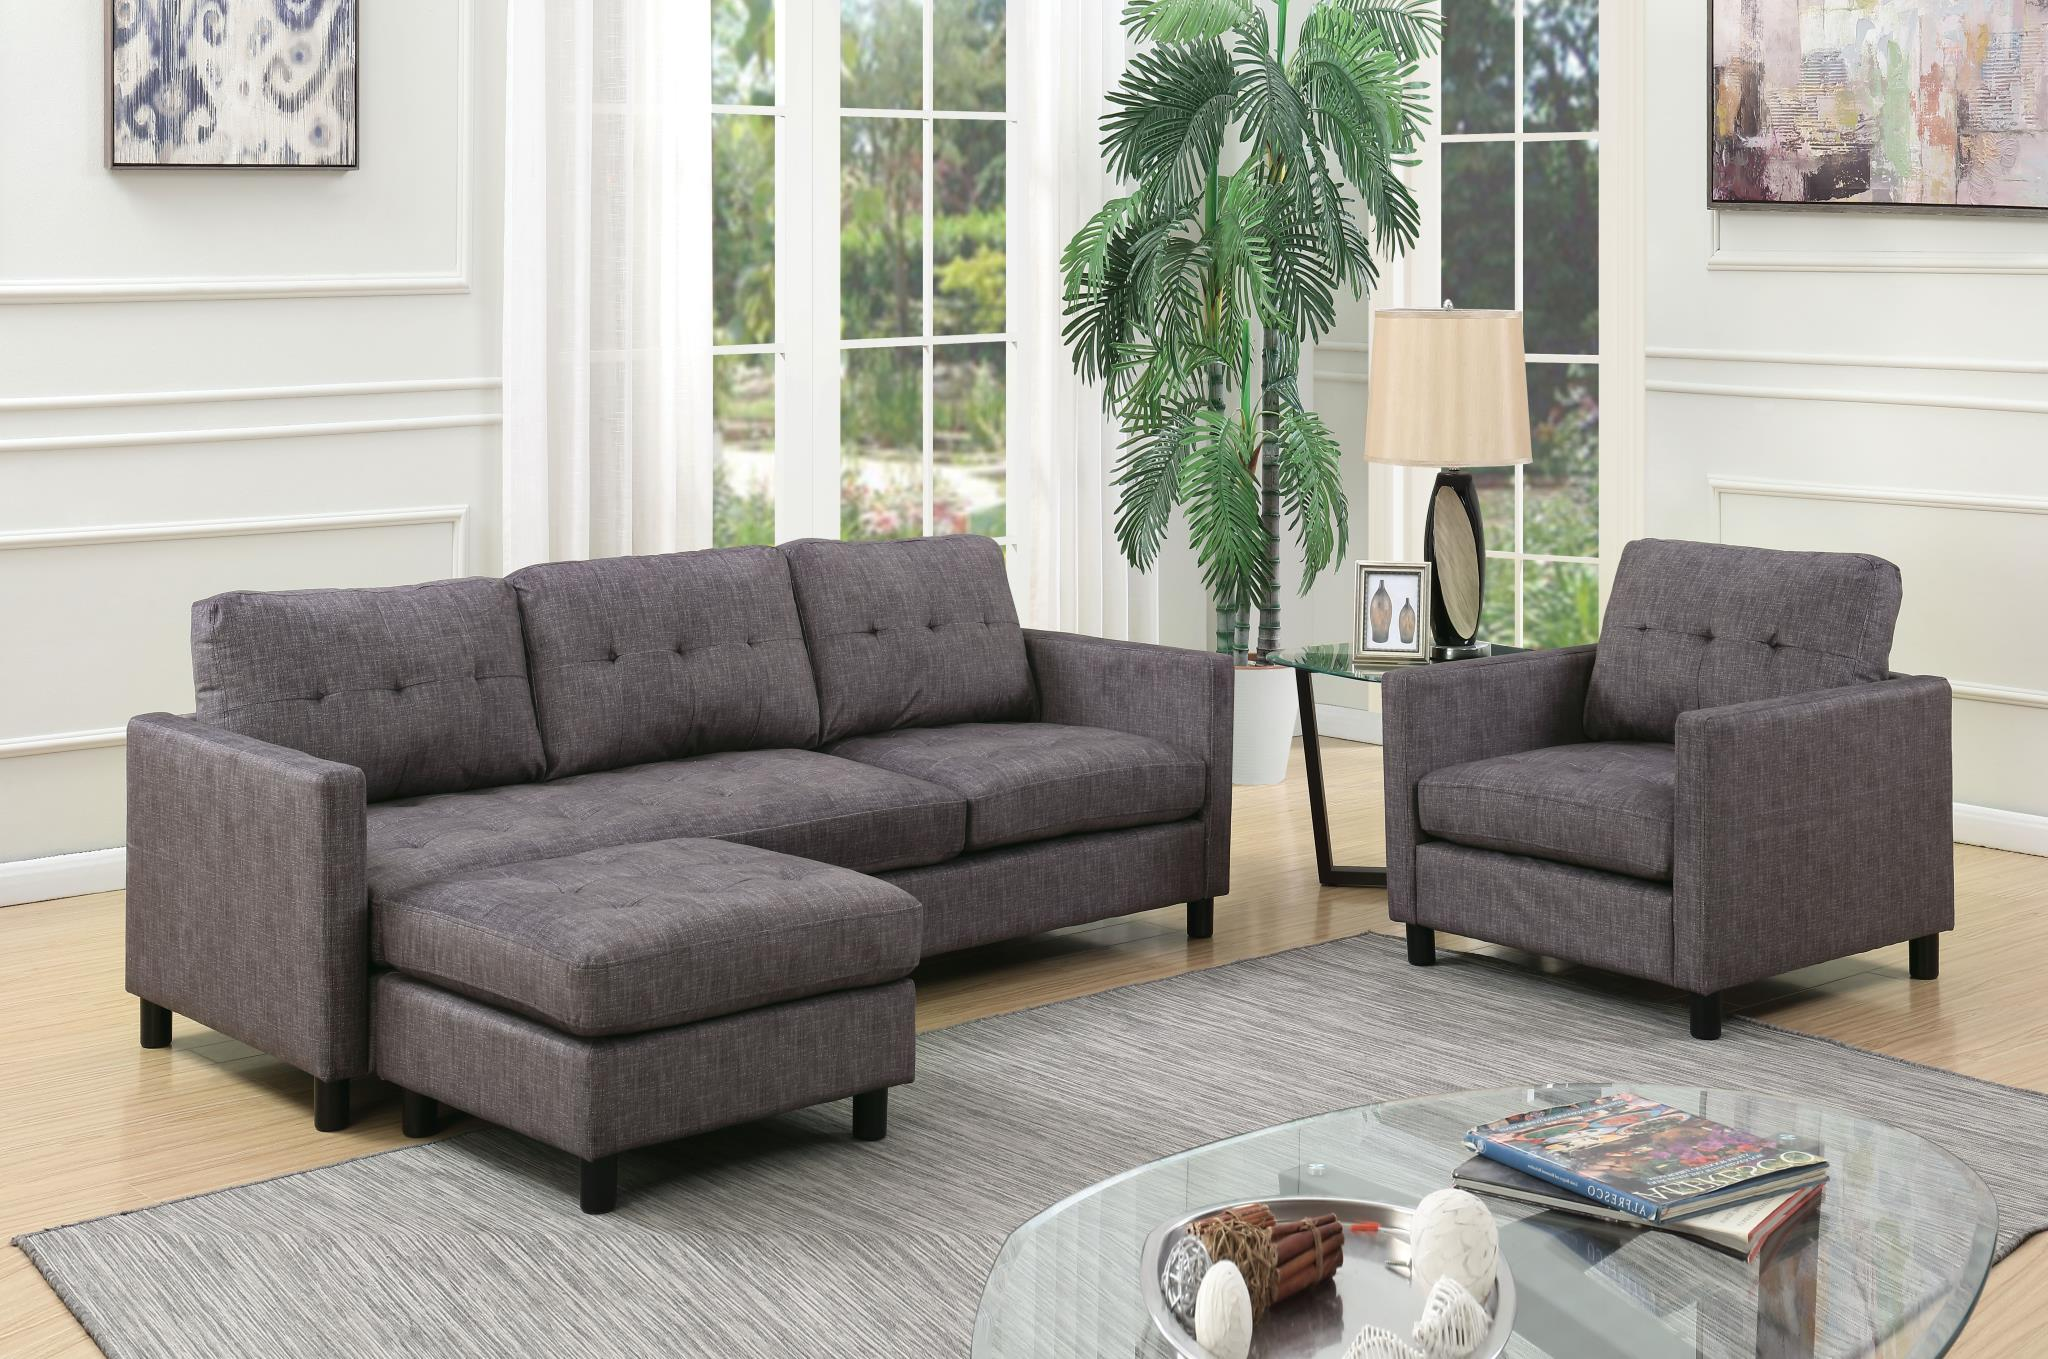 Convertible Sofa into Sectional w/ Left Facing Chaise and Chair